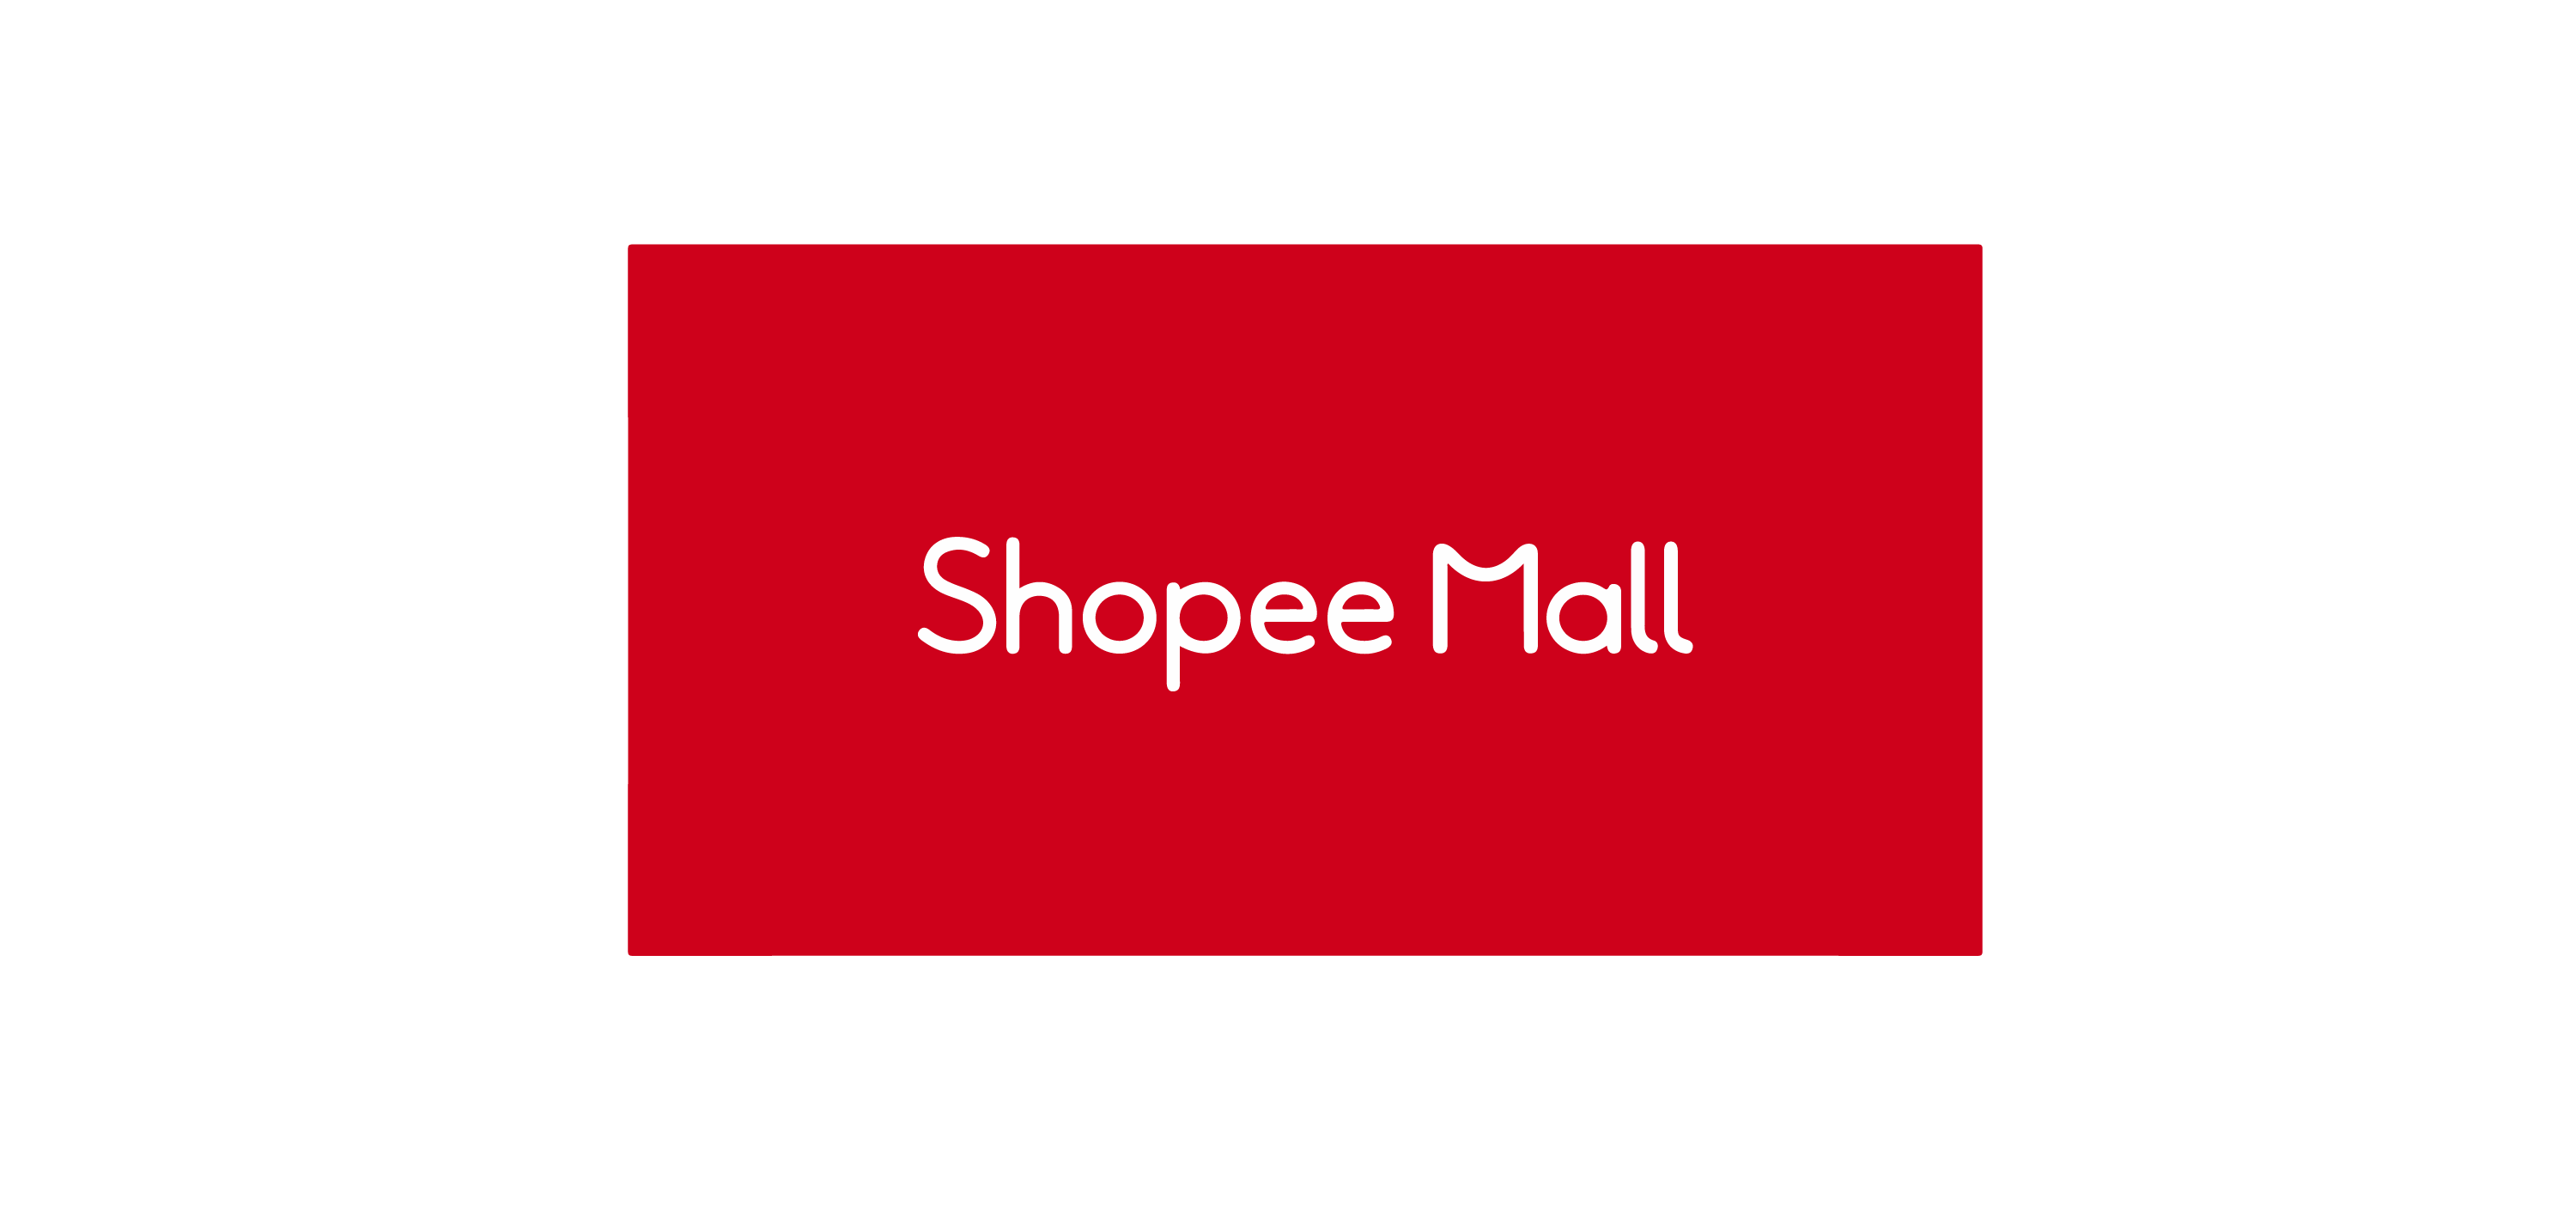 shopee mall logo vector